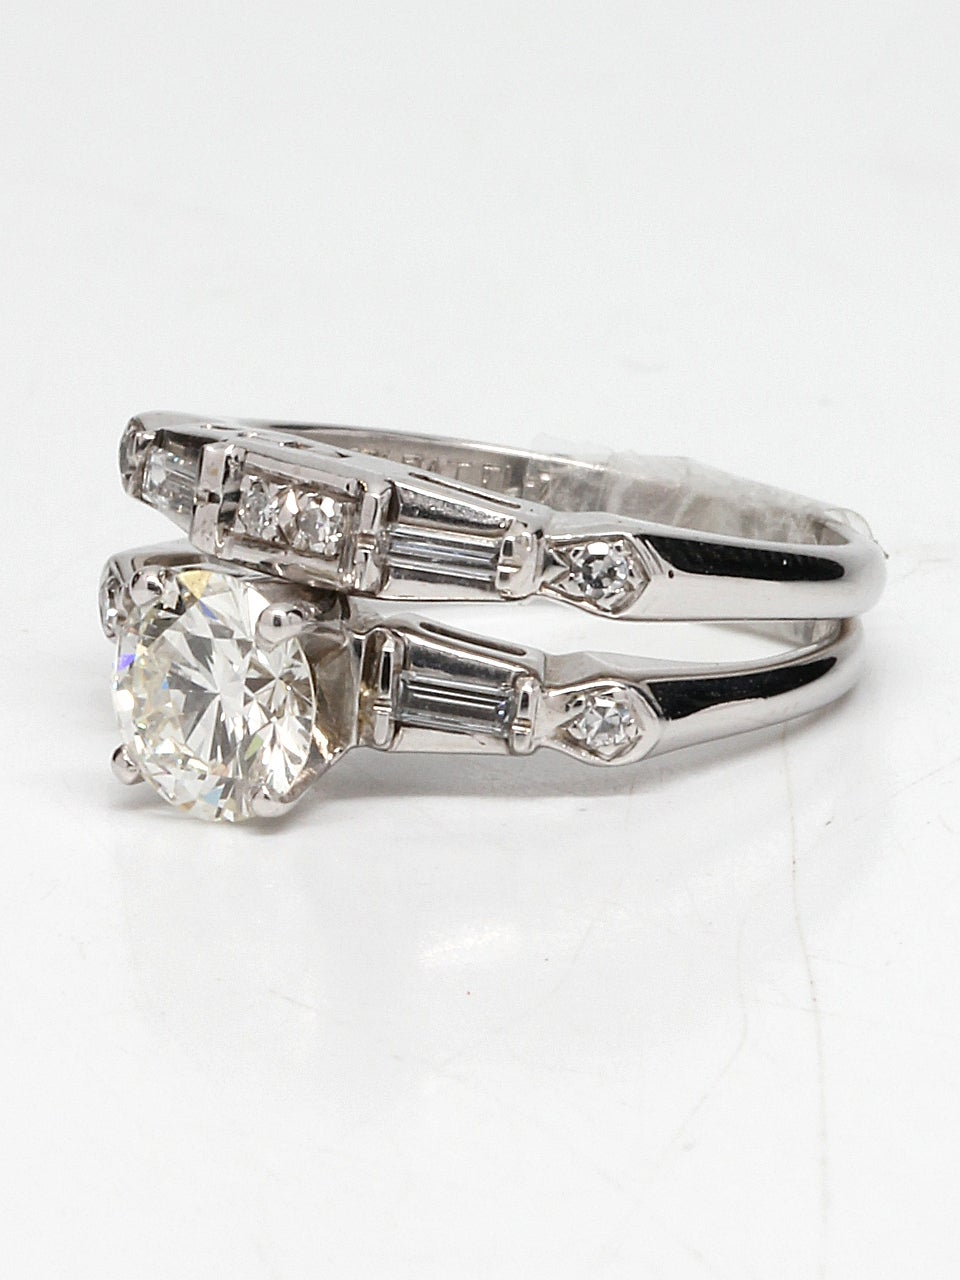 1950s Diamond Gold Wedding Ring Set For Sale at 1stdibs